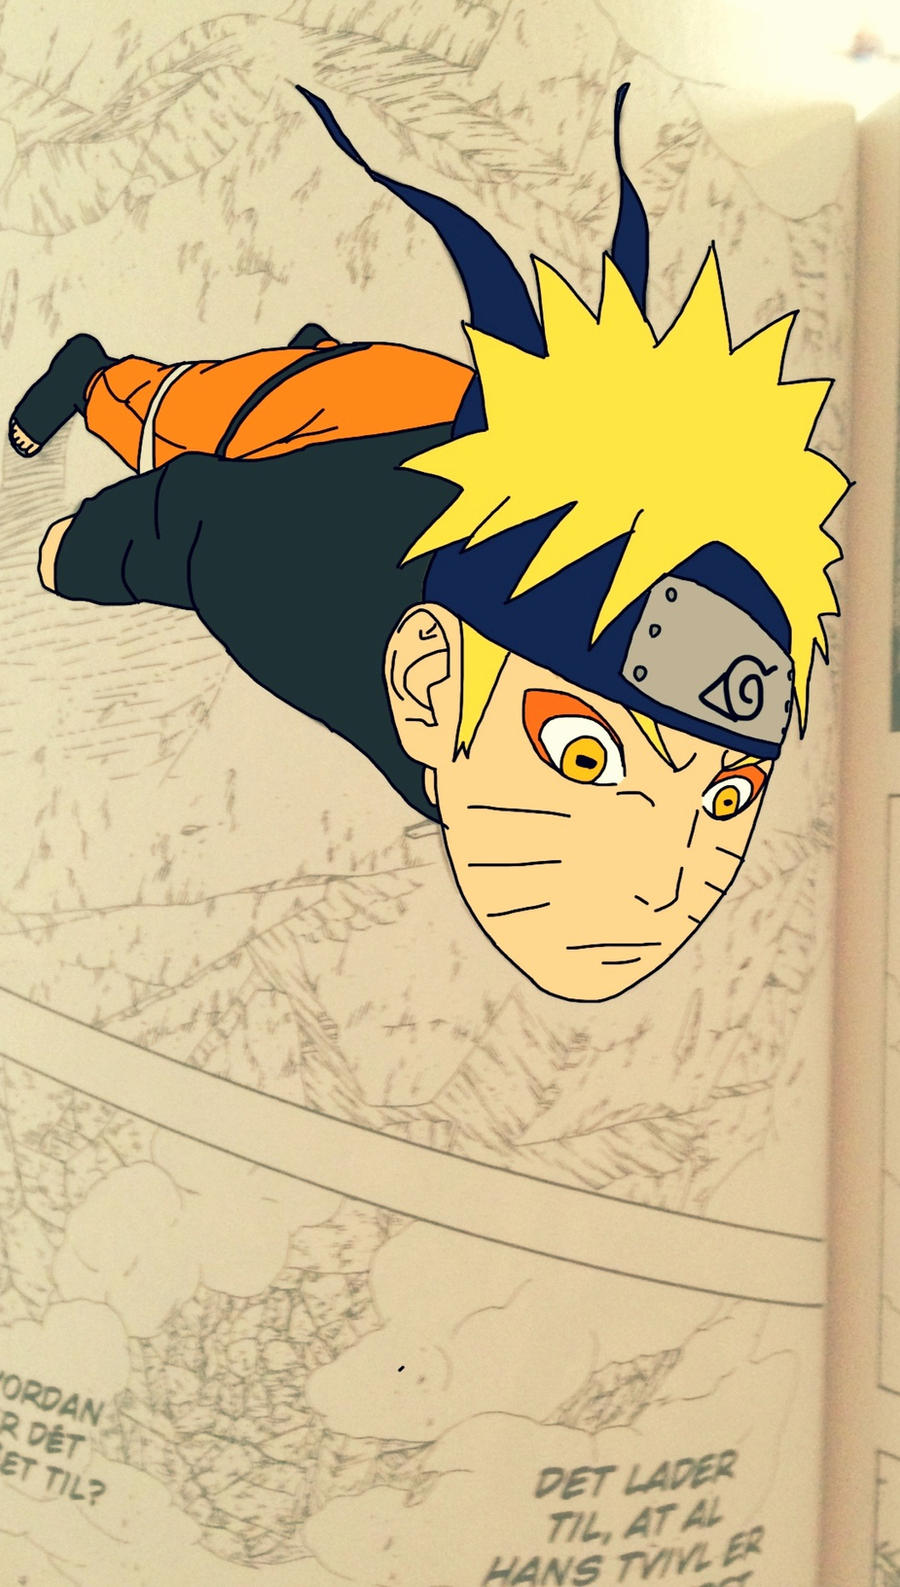 Naruto Games - Free downloads and reviews - CNET Download.com